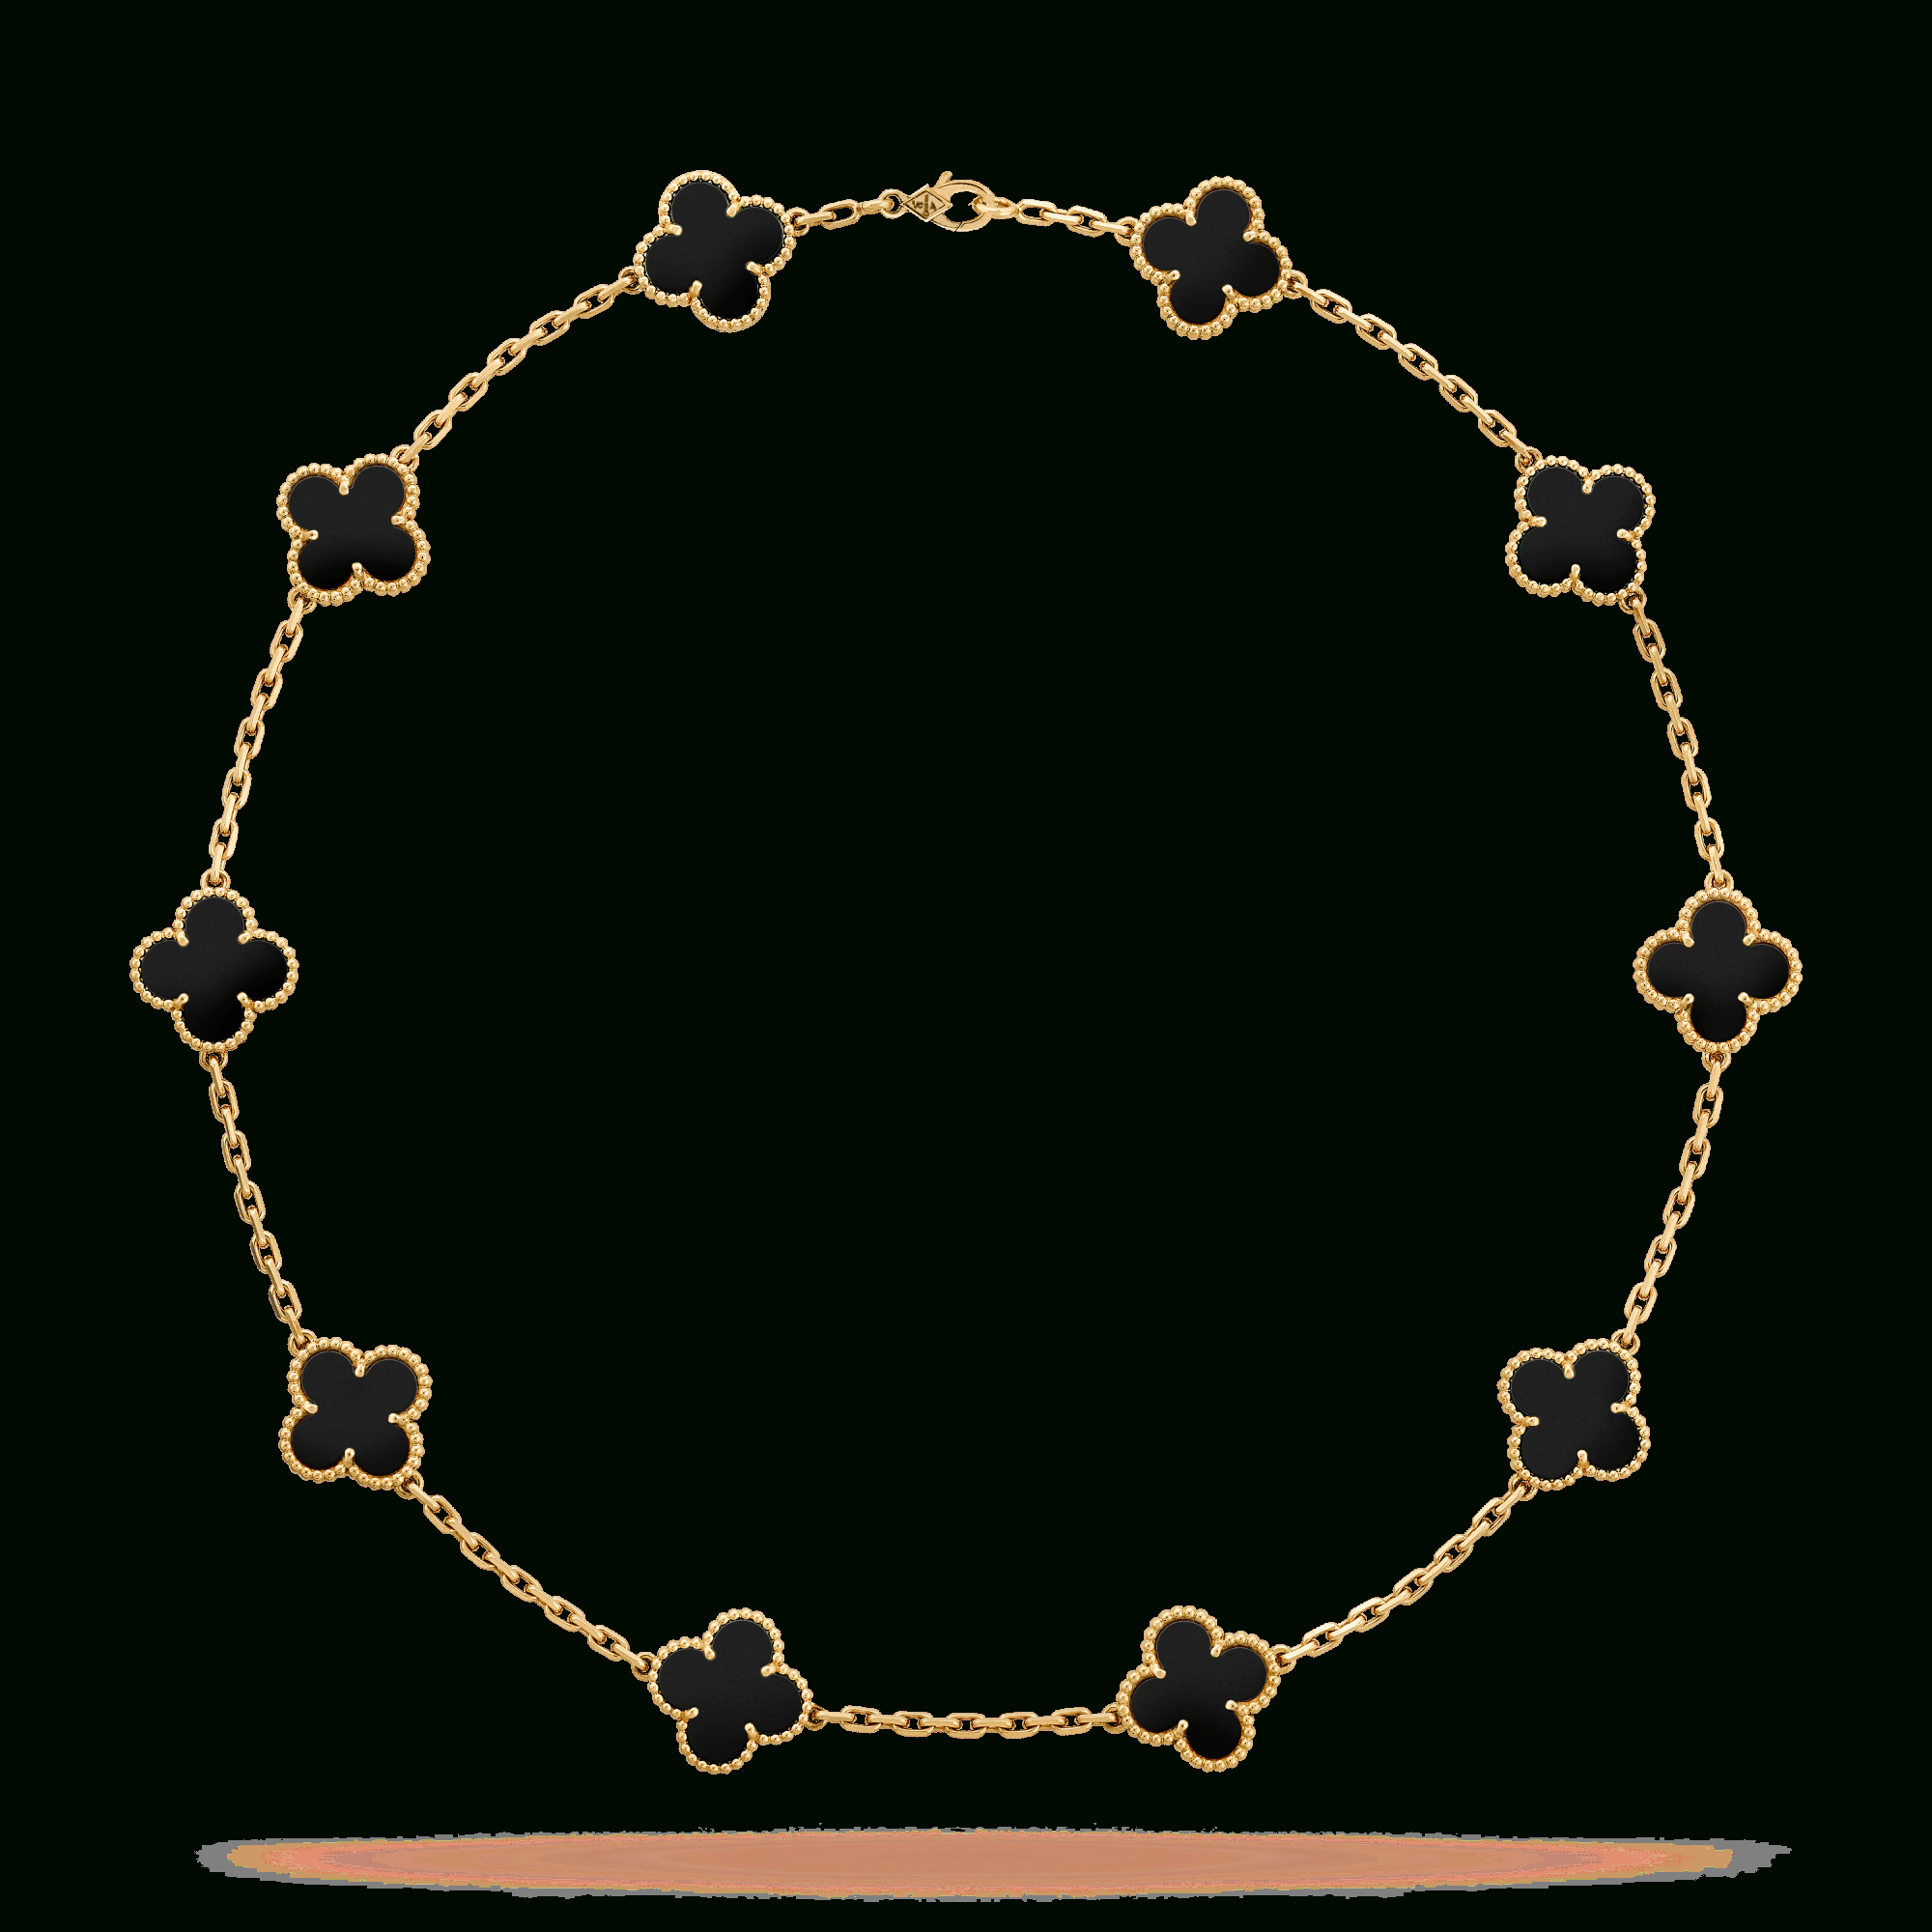 Vintage Alhambra Necklace, 10 Motifs – Vcara42700 Van Cleef & Arpels Intended For Recent Vintage Circle Collier Necklaces (View 13 of 25)